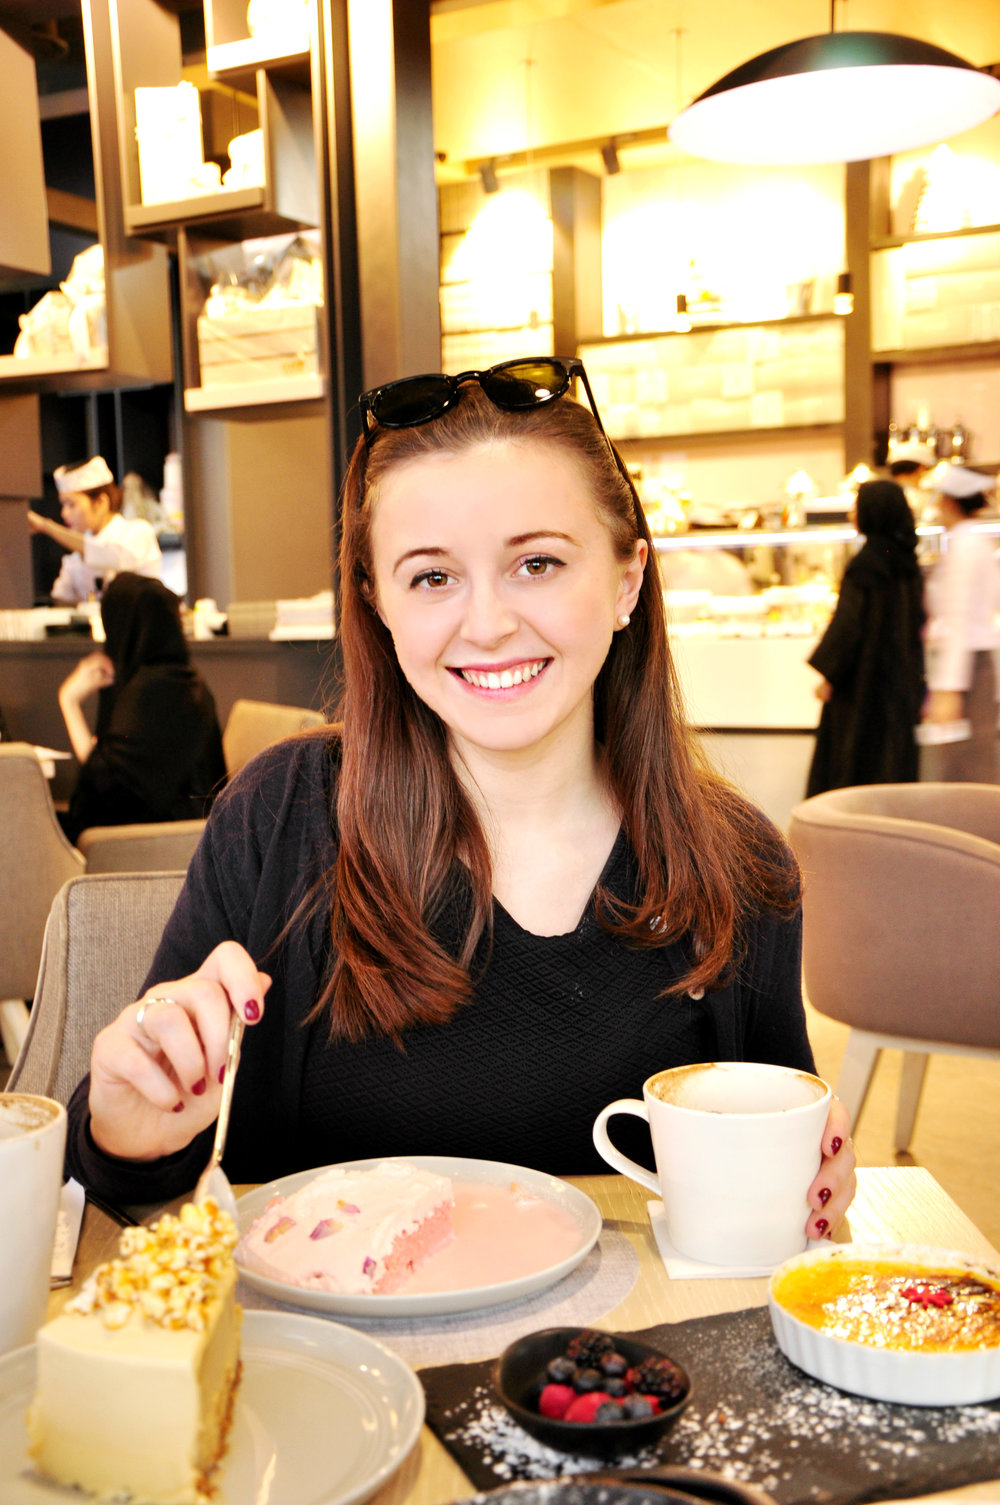 Sophie reviewing restaurants and hotels in Dubai